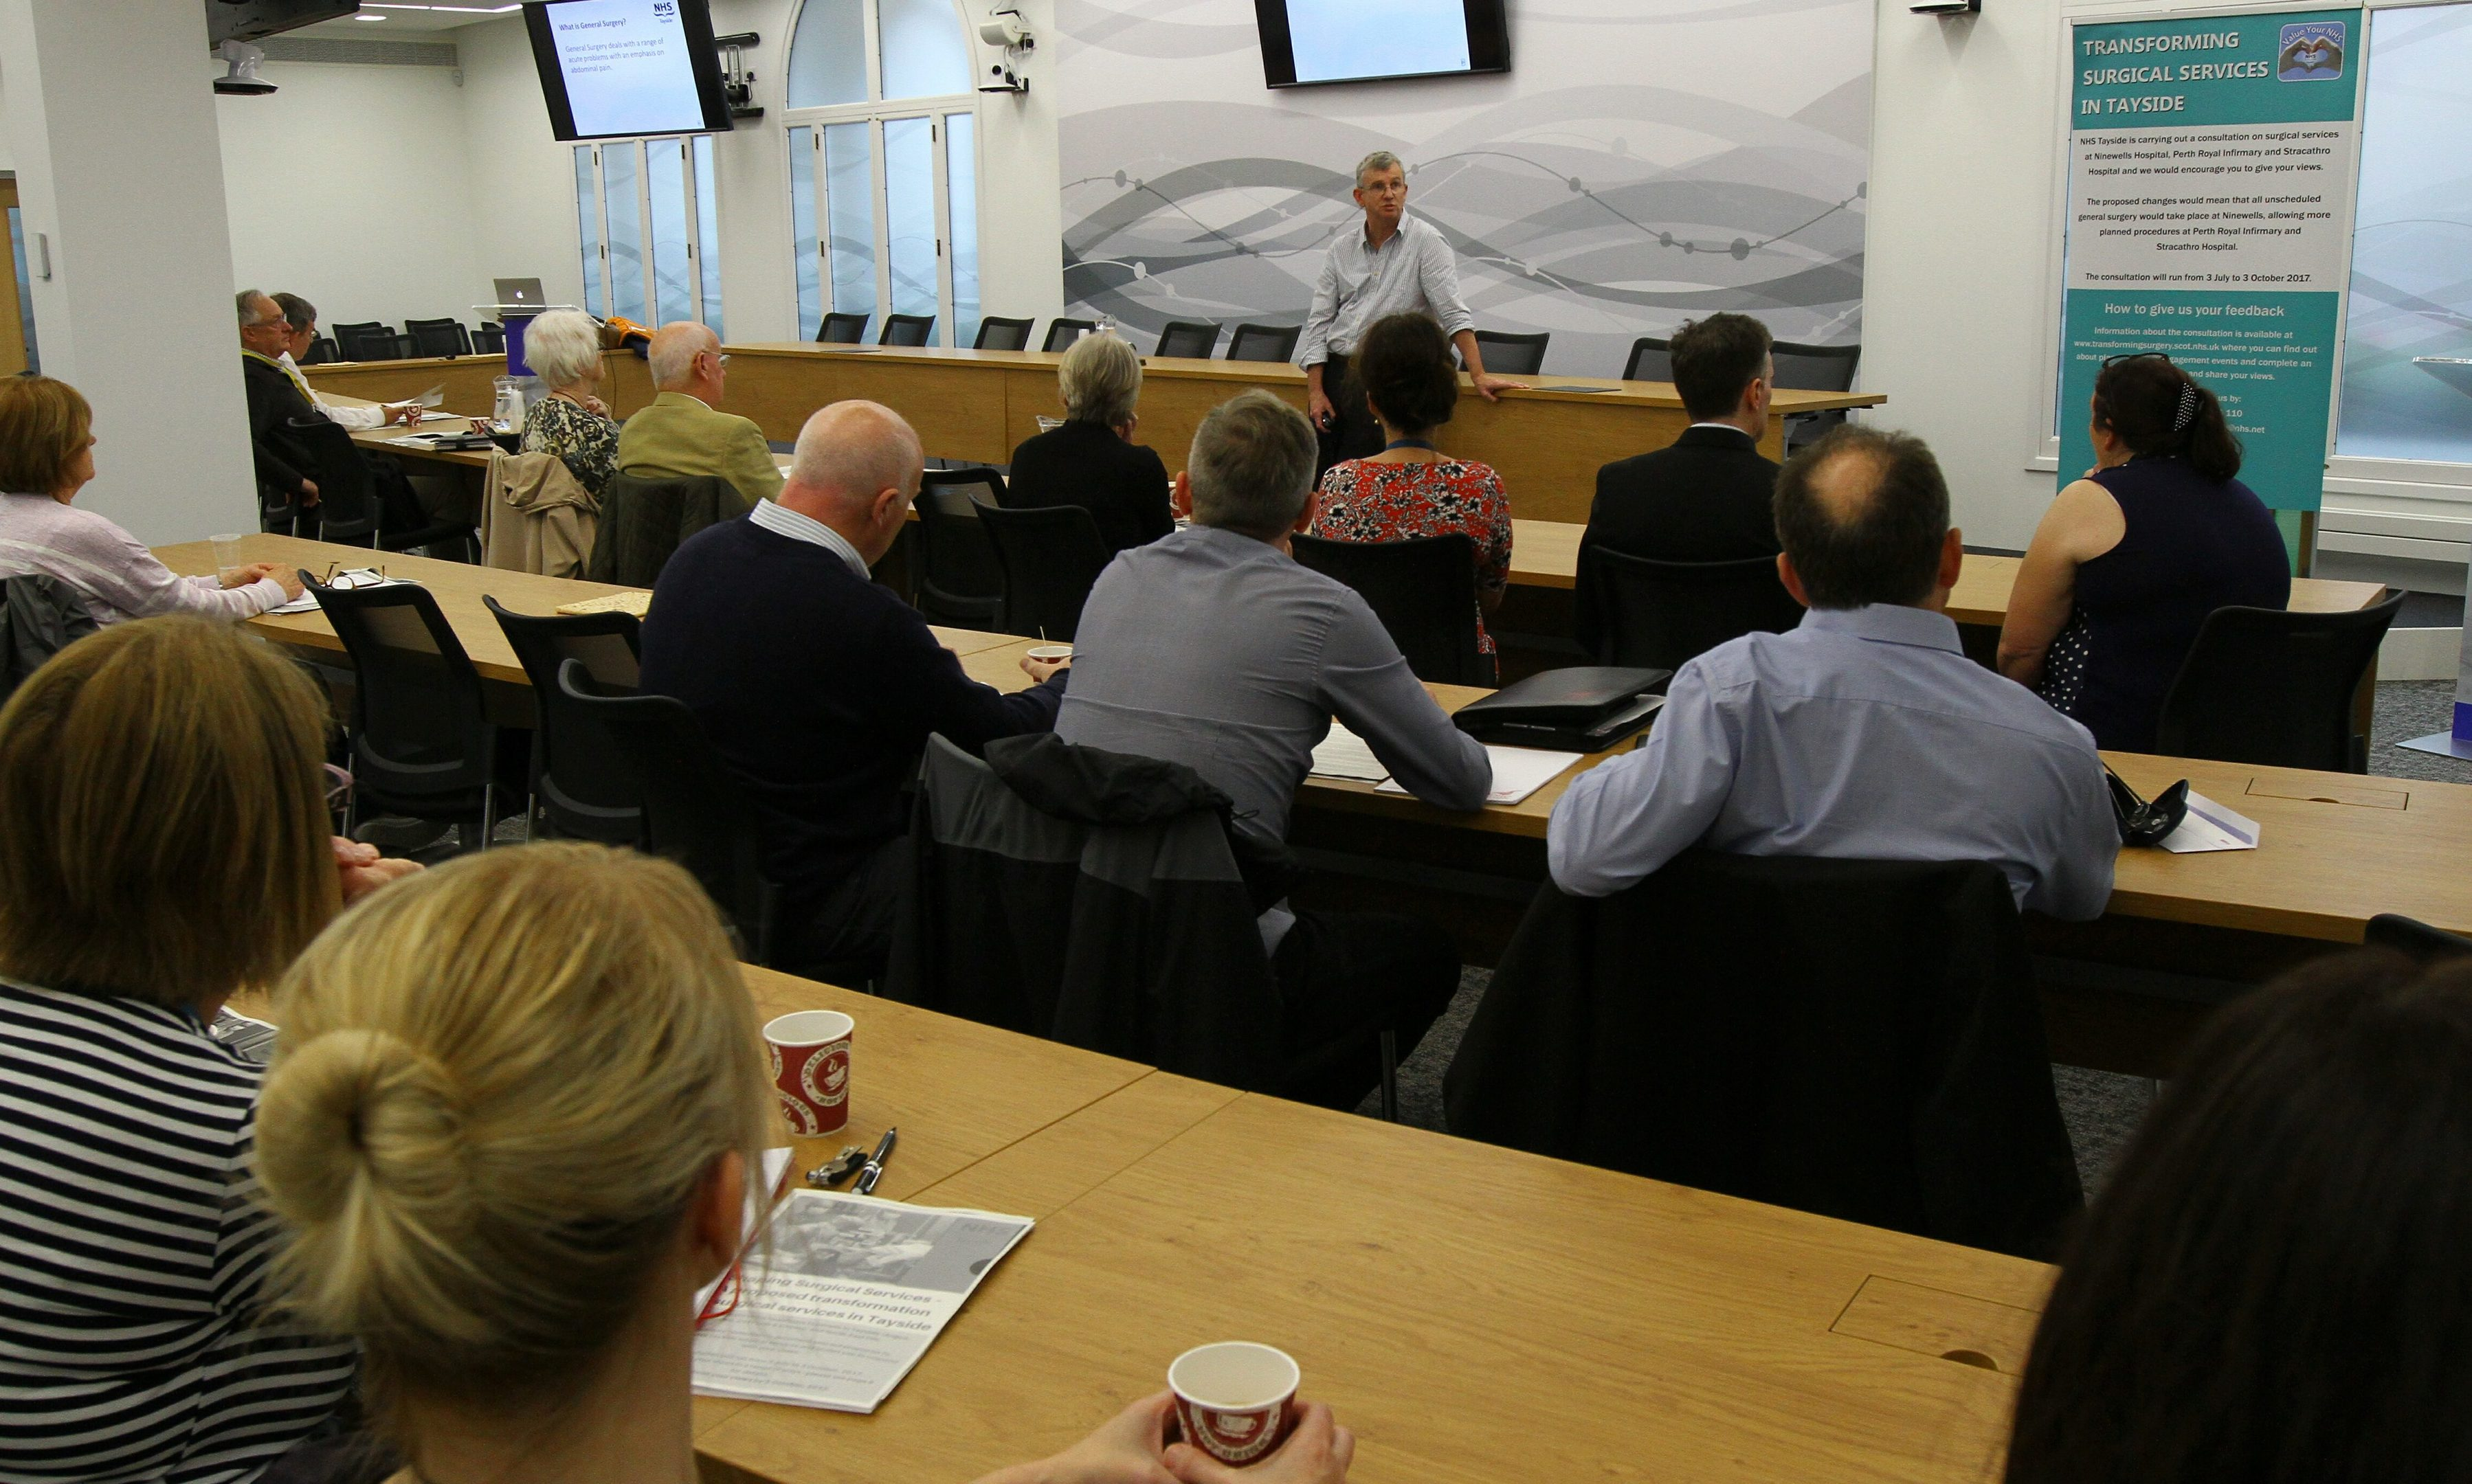 """Peter Stonebridge Associate Medical Director for Surgery, addressing the attendees at the public meeting """"Shaping Surgical Services"""" at Perth & Kinross Council HQ."""